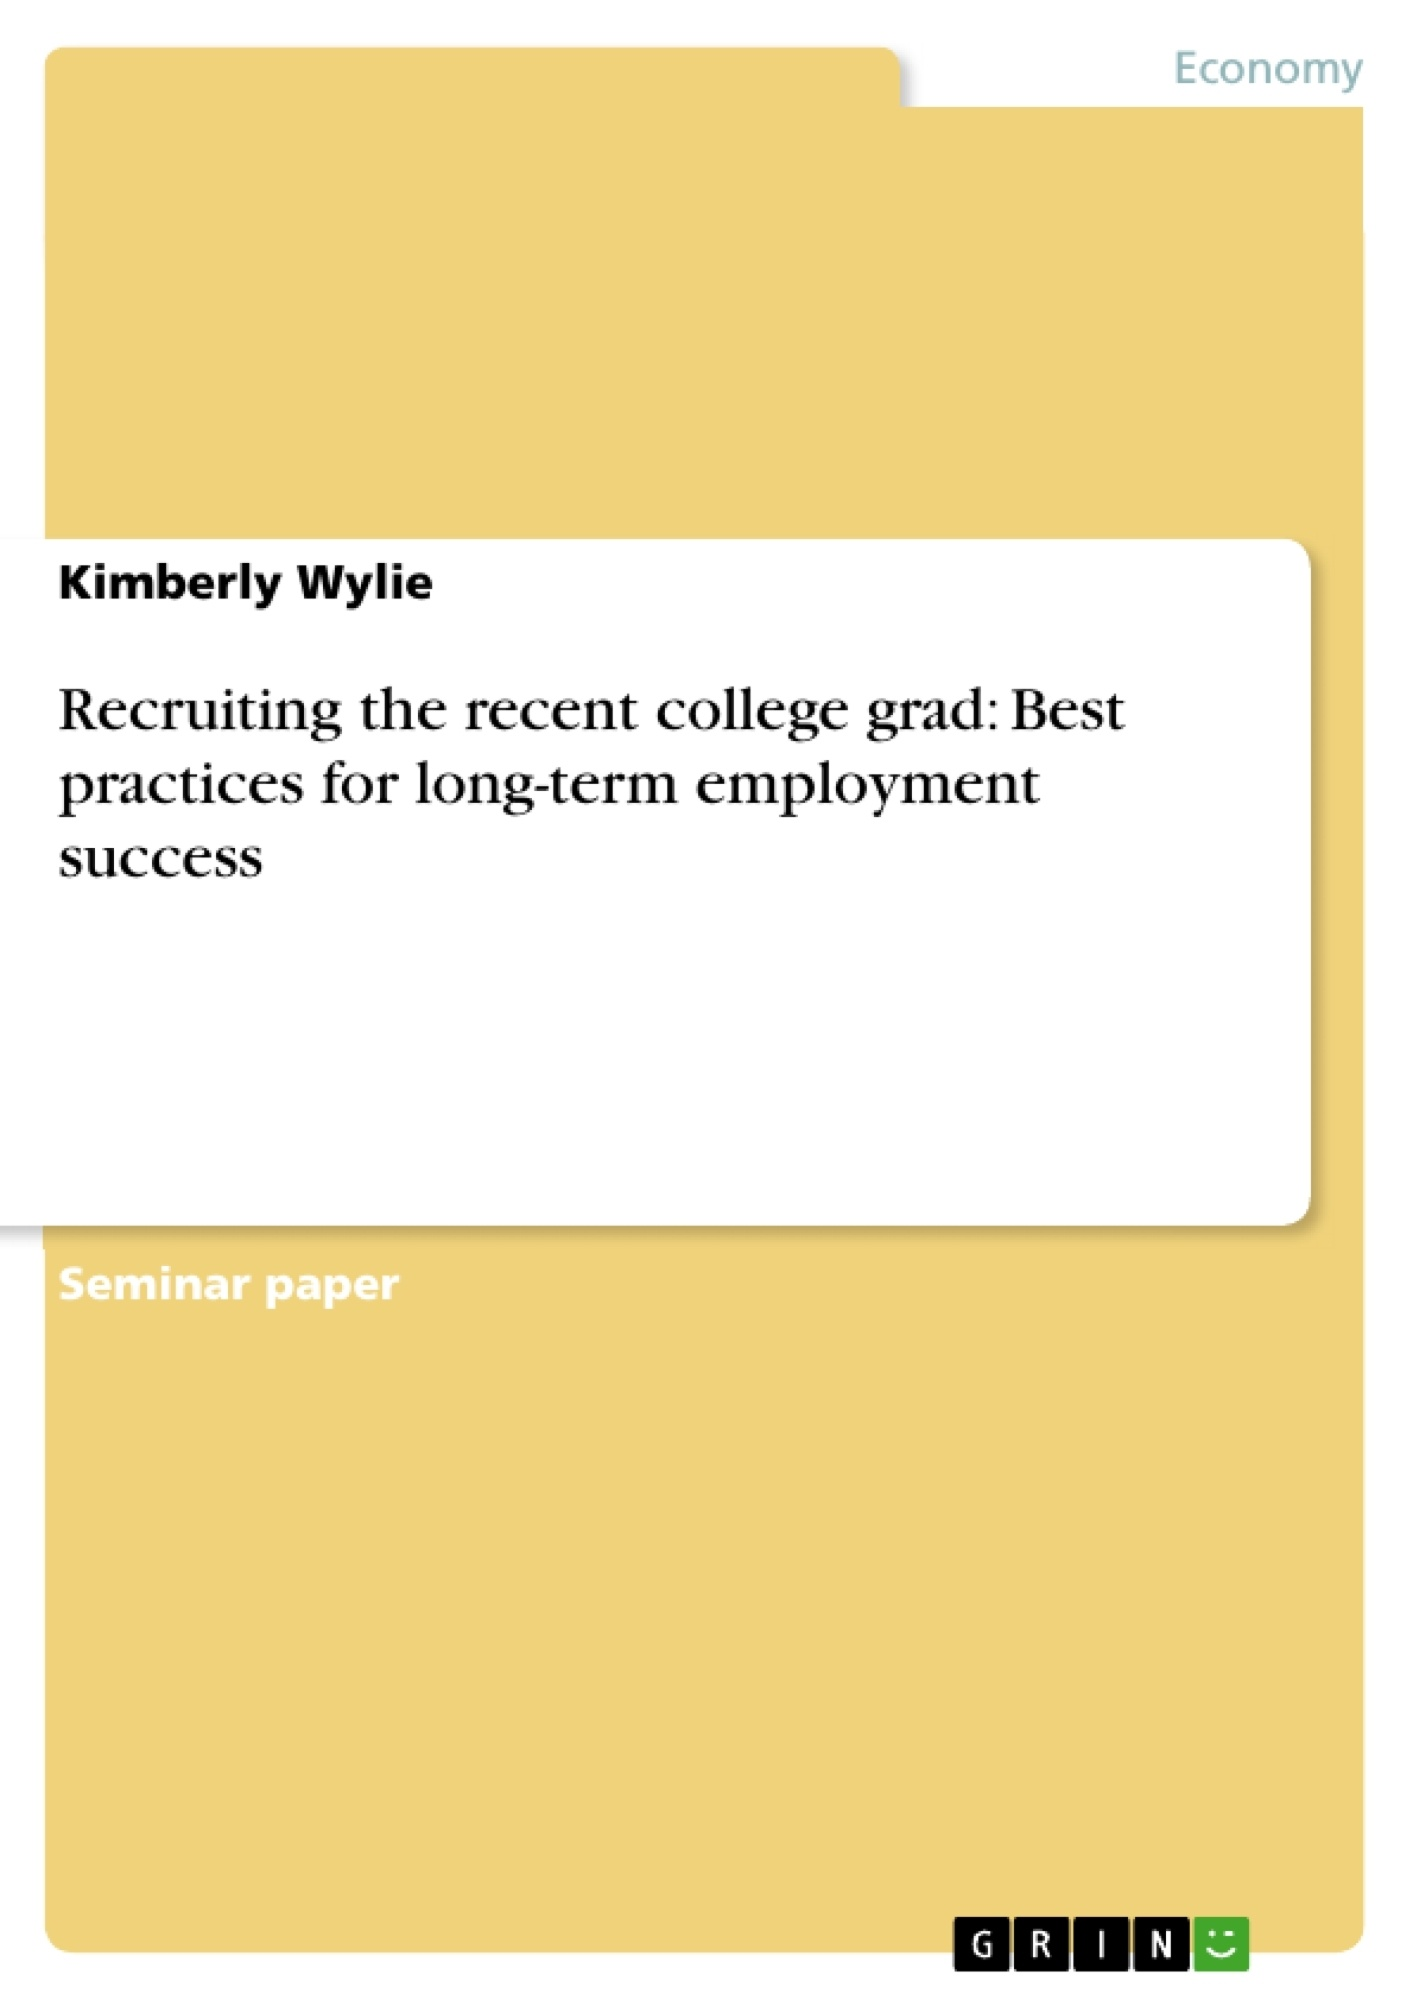 Title: Recruiting the recent college grad: Best practices for long-term employment success